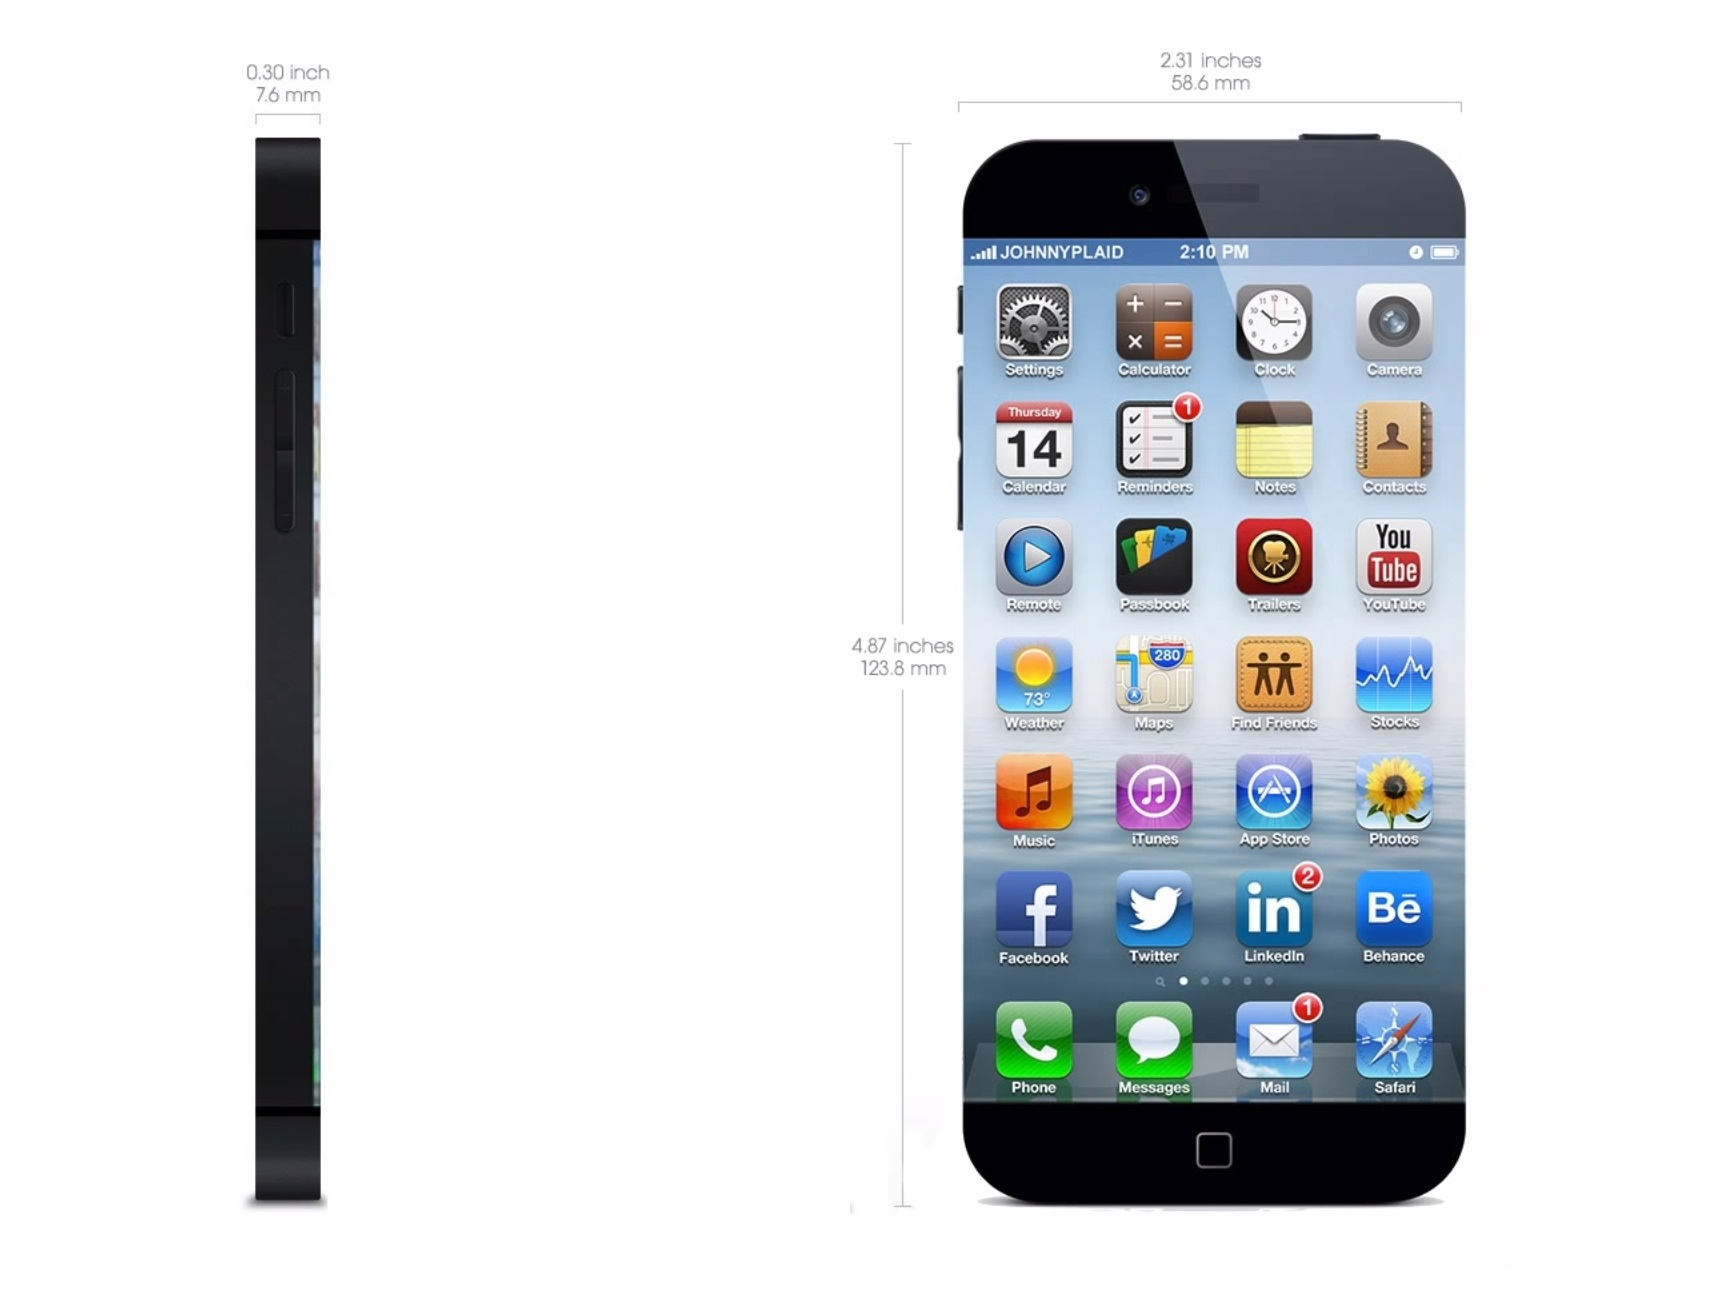 FAYAN SALES iPhone 6 Concept Edge to Edge Display Smart Home 1721x1295